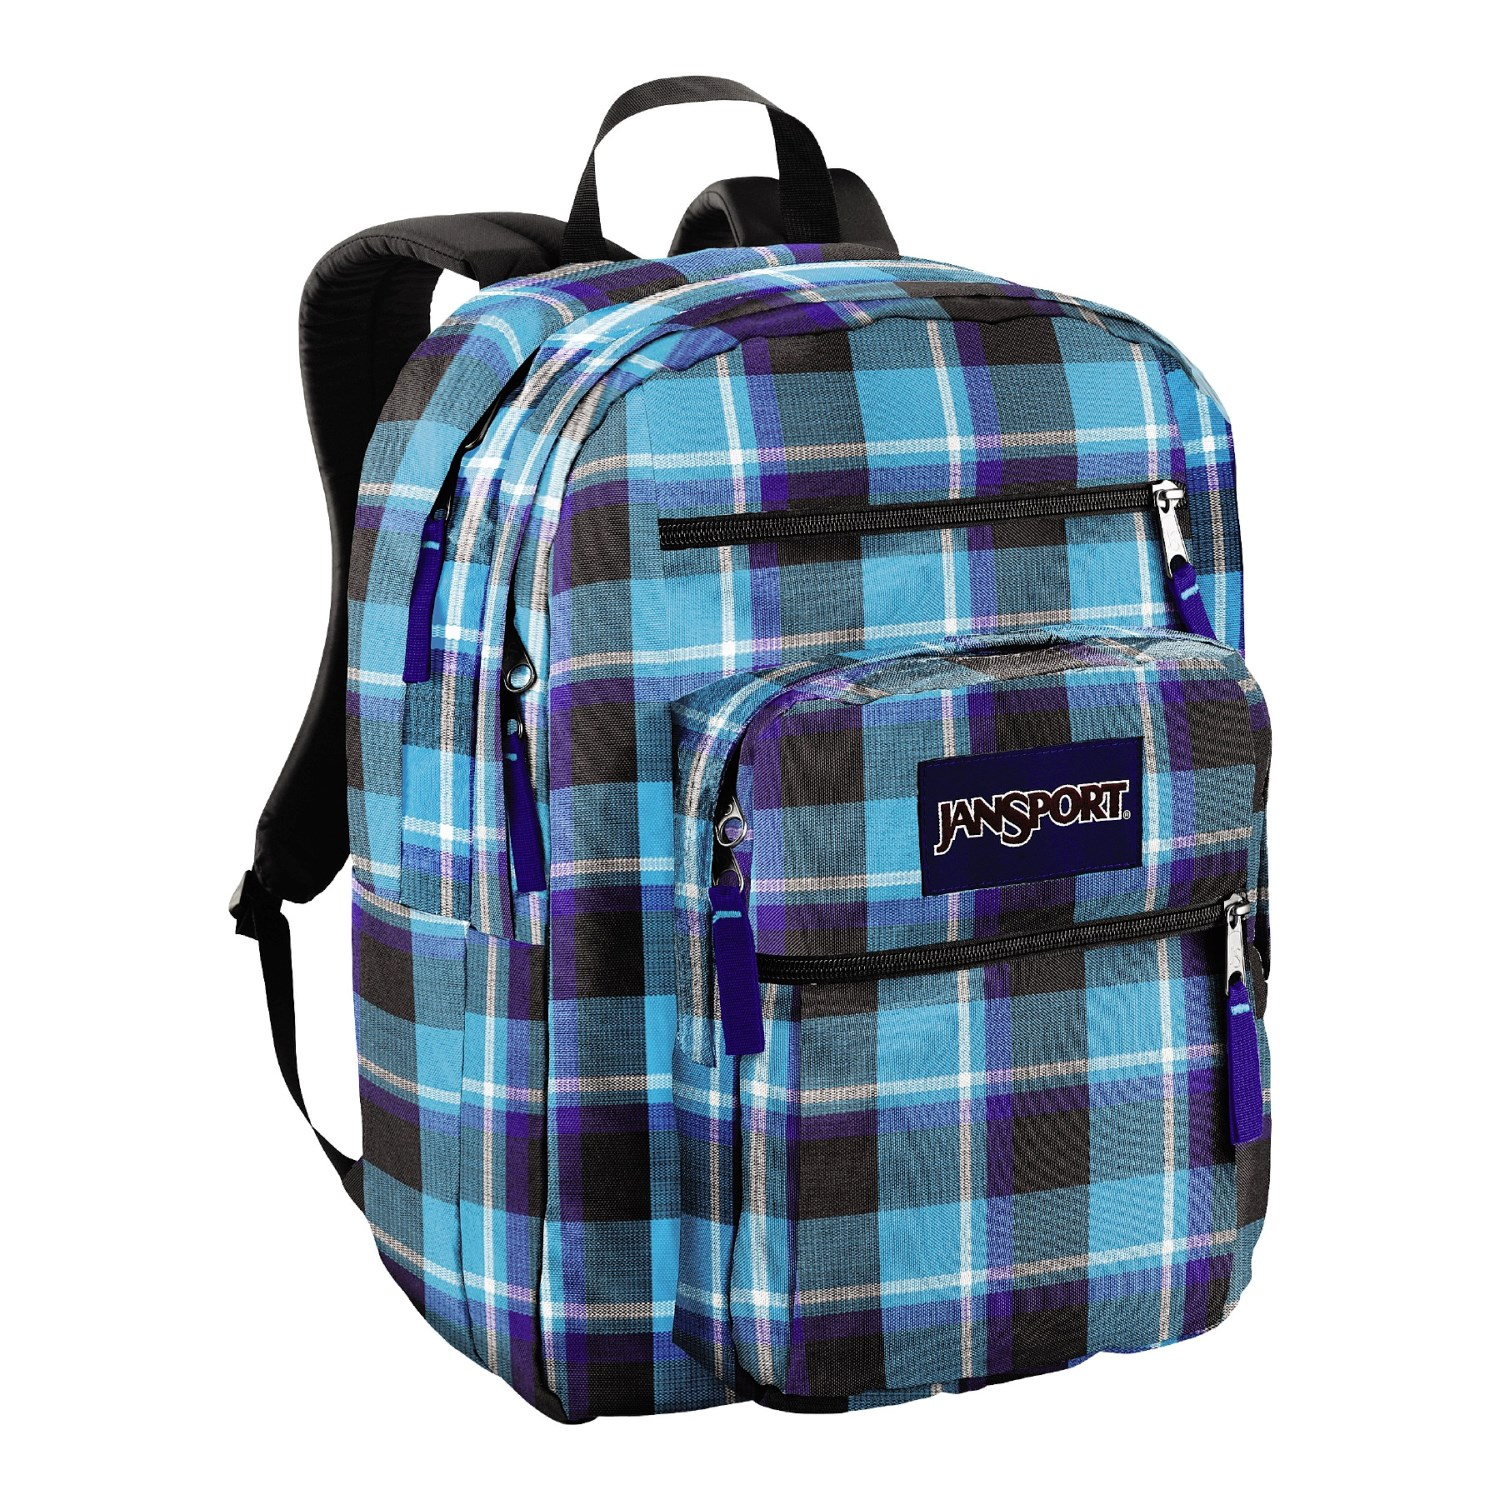 Jansport Backpacks Clearance | Crazy Backpacks